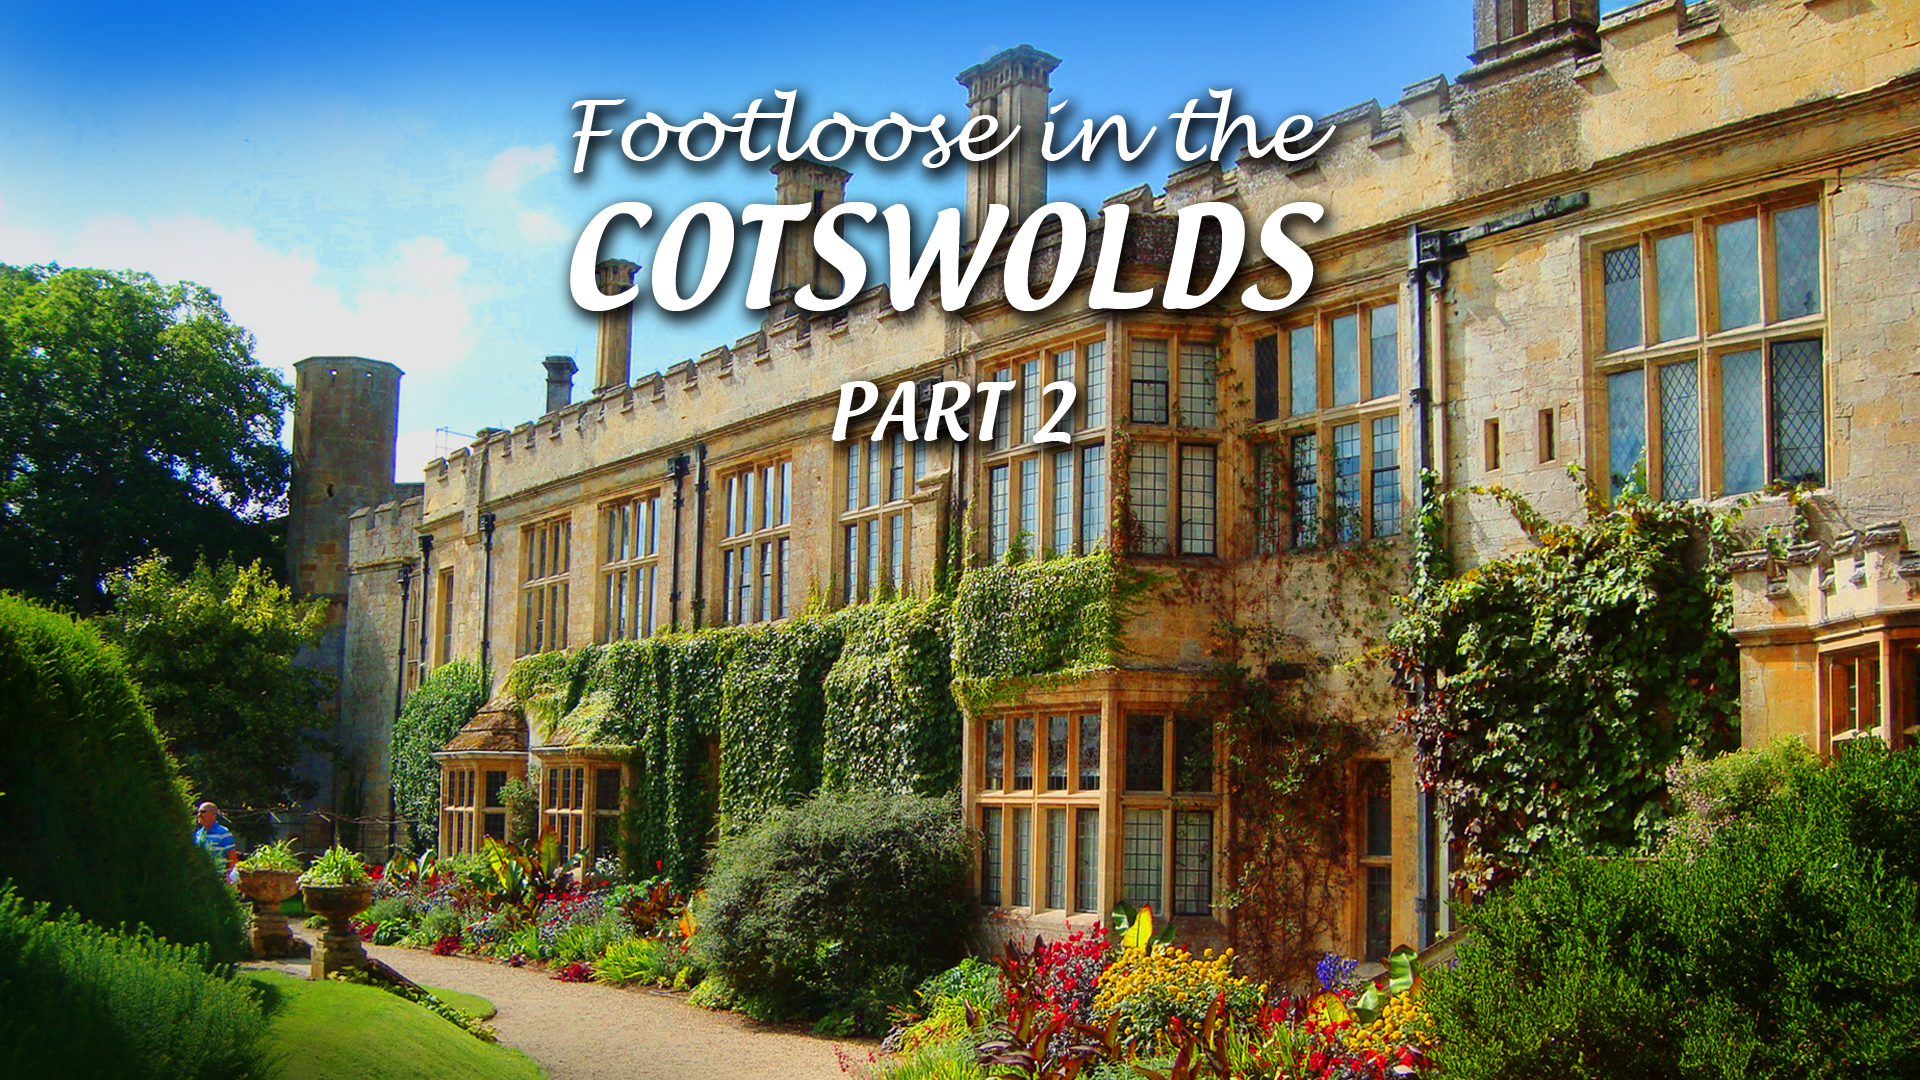 Footloose in the Cotswolds - Part 2